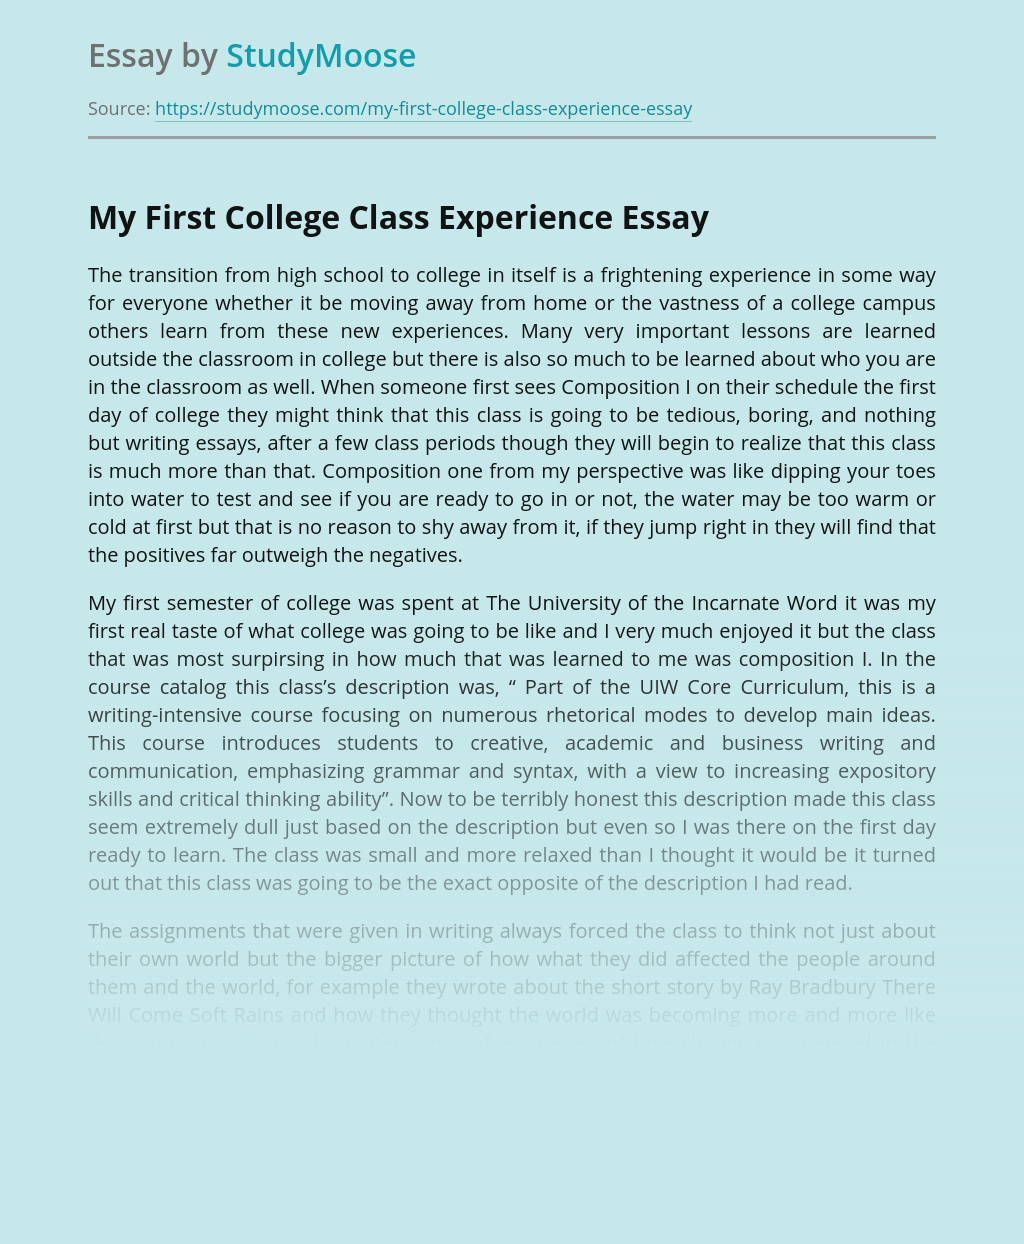 My First College Class Experience